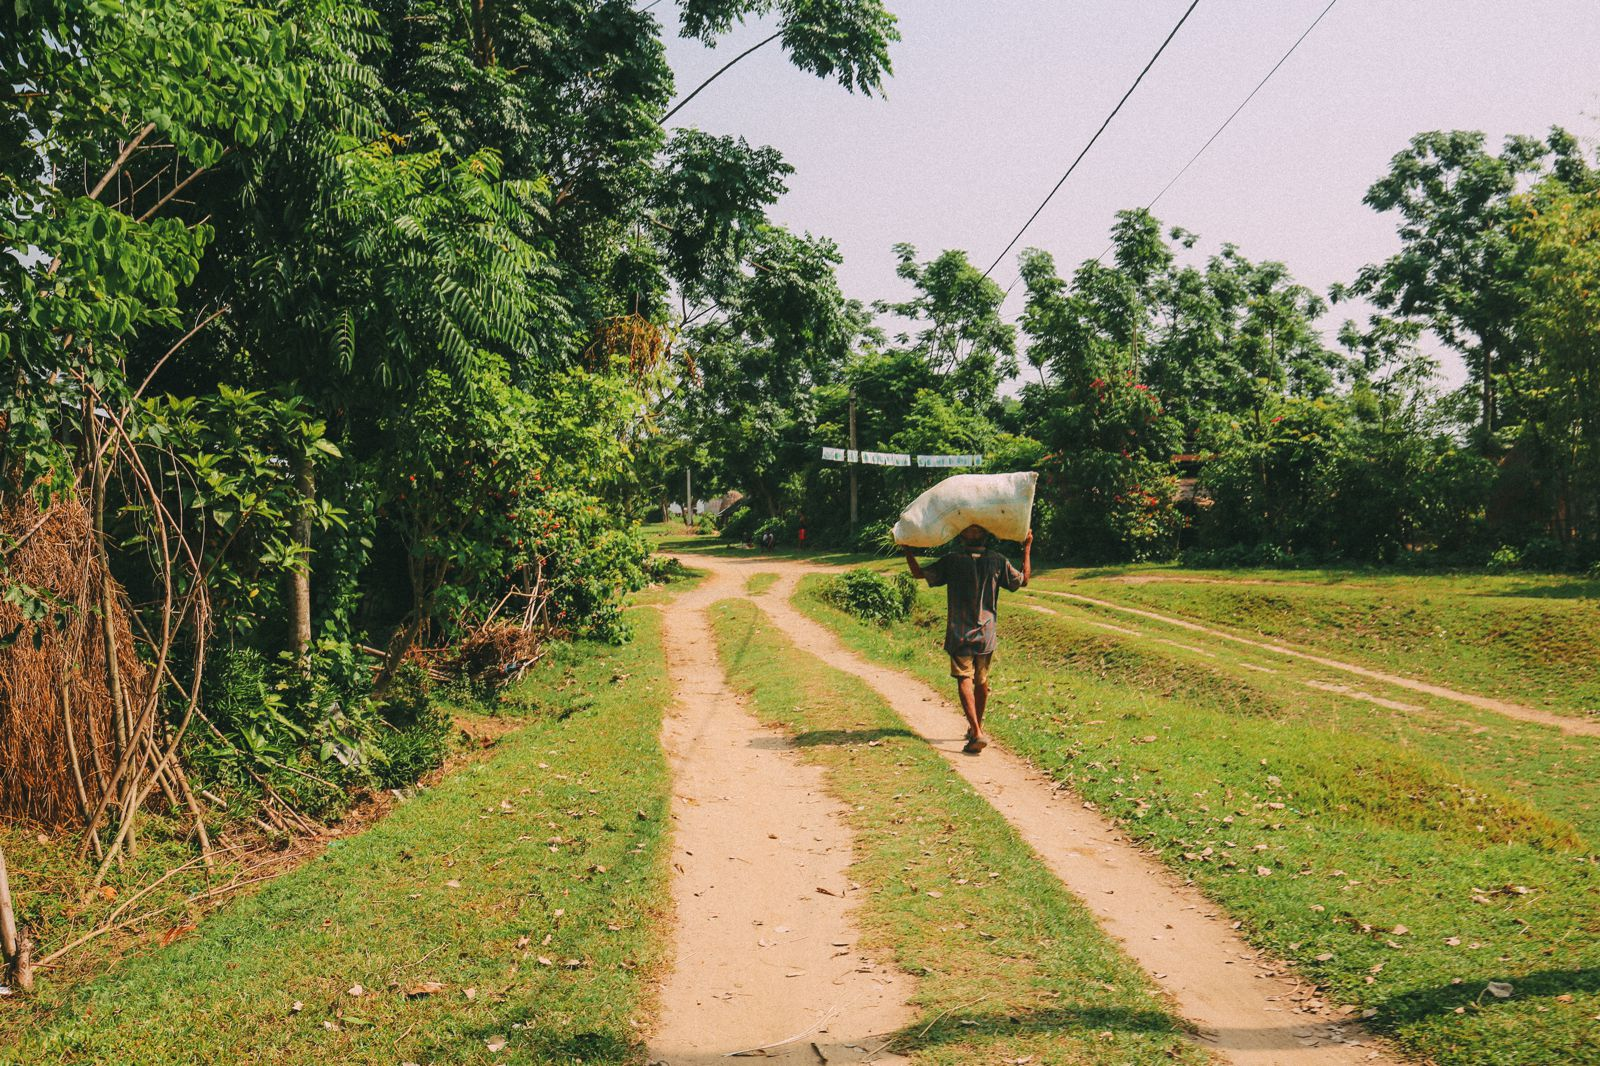 The Sights, Sounds And People Of Chitwan, Nepal (33)